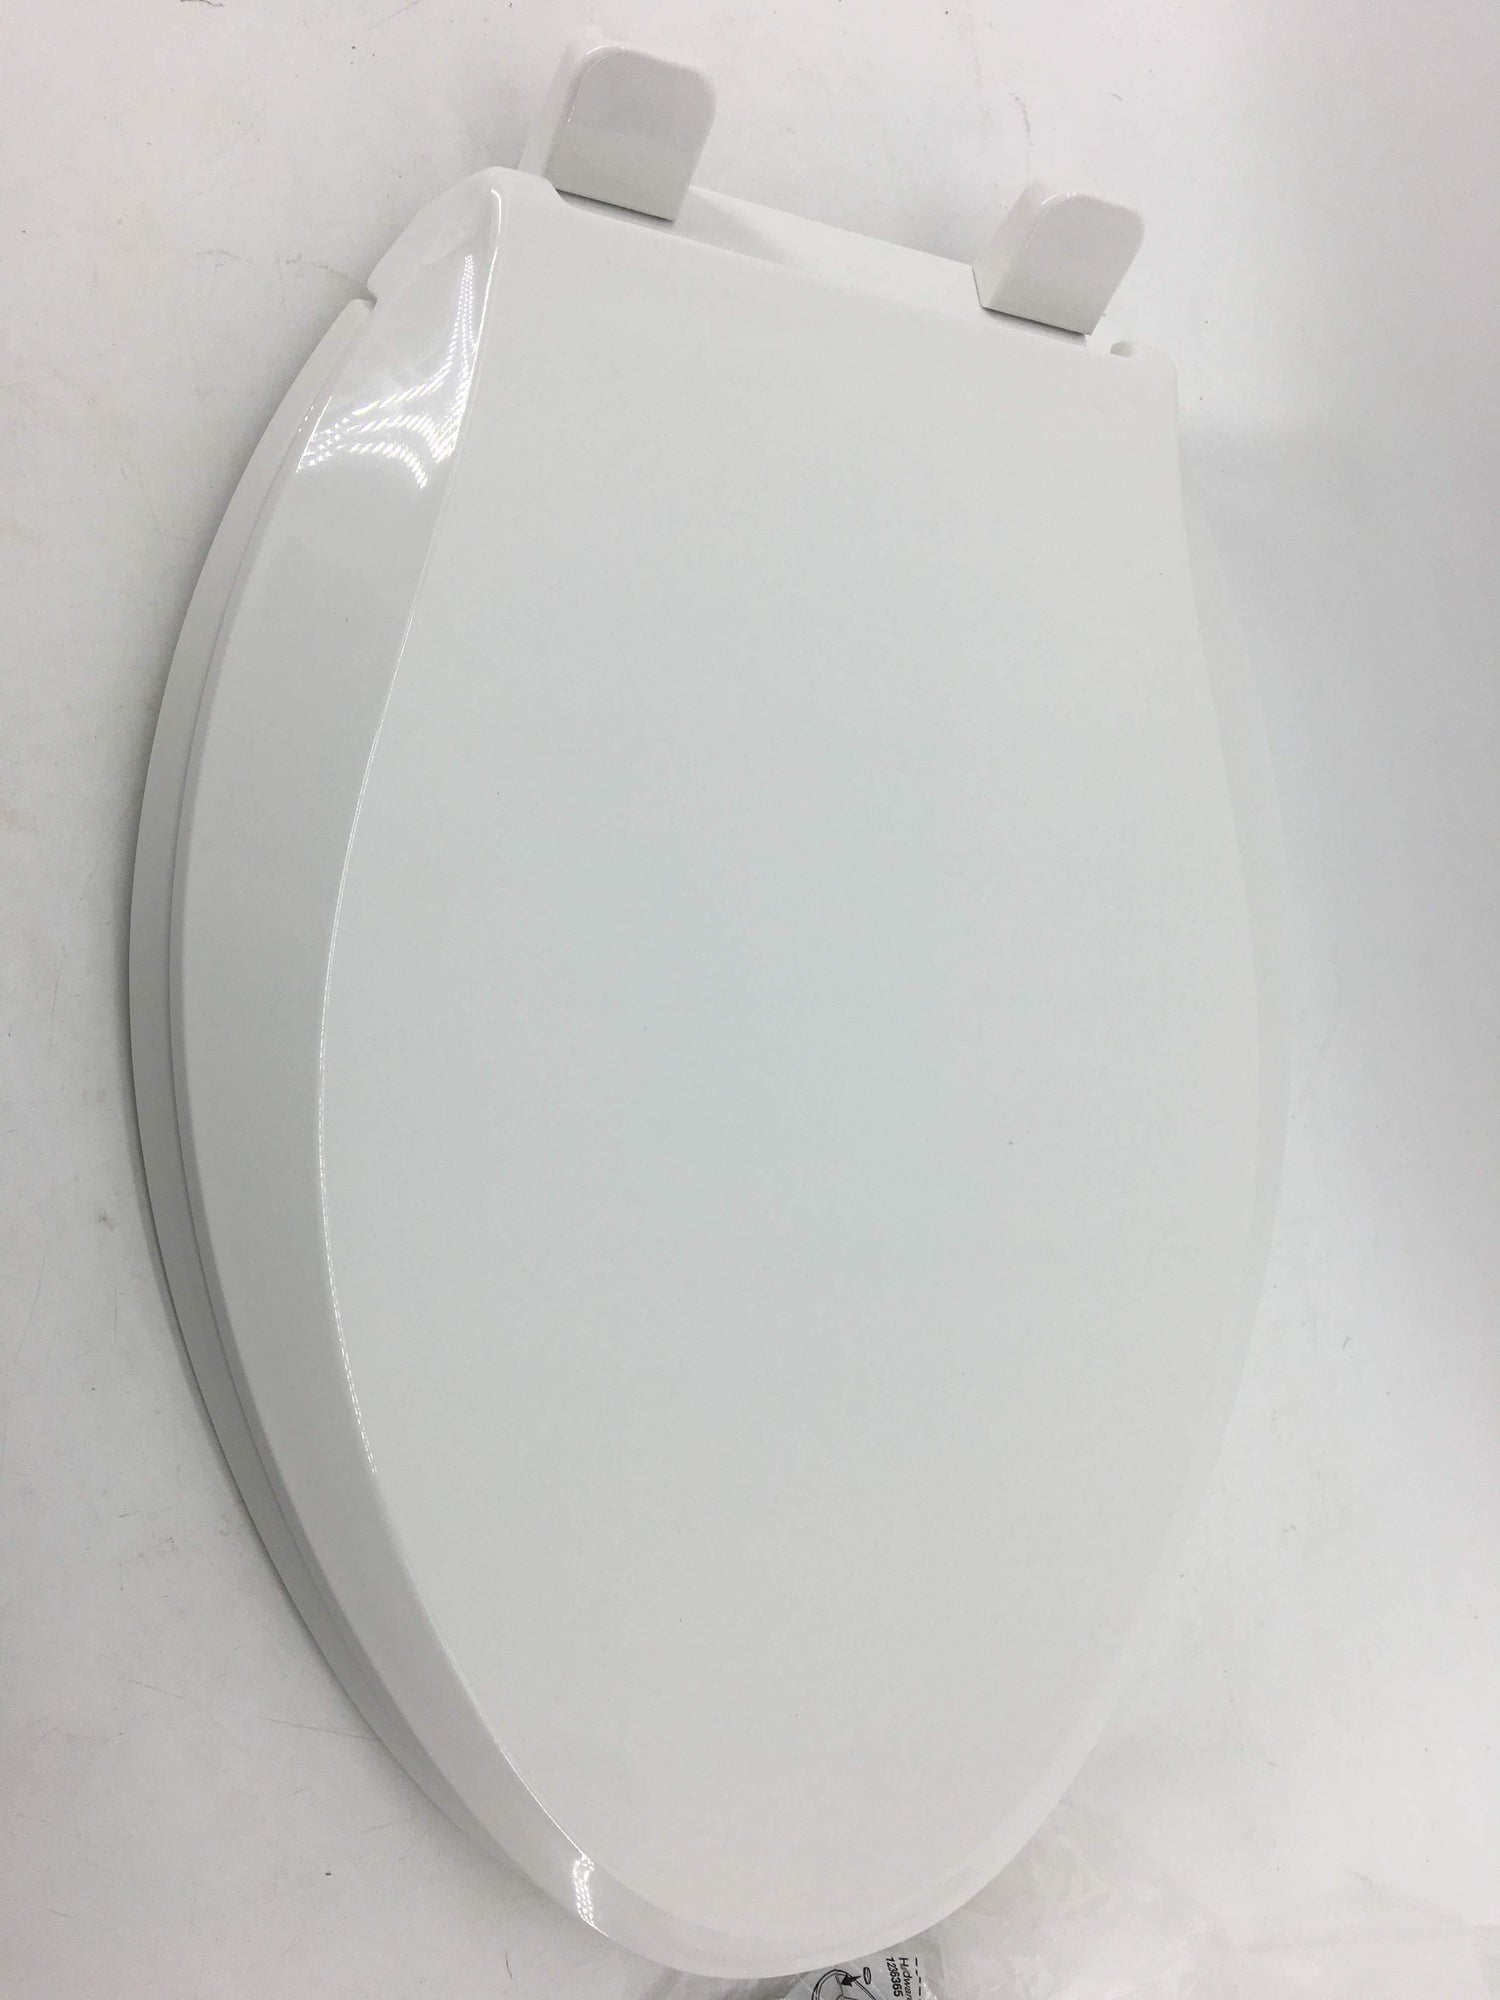 Peachy Kohler K 4636 0 Cachet Elongated White Toilet Seat With Grip Tight Bumpers Quiet Close Seat Quick Release Hinges Quick Attach Hardware No Slam Gmtry Best Dining Table And Chair Ideas Images Gmtryco